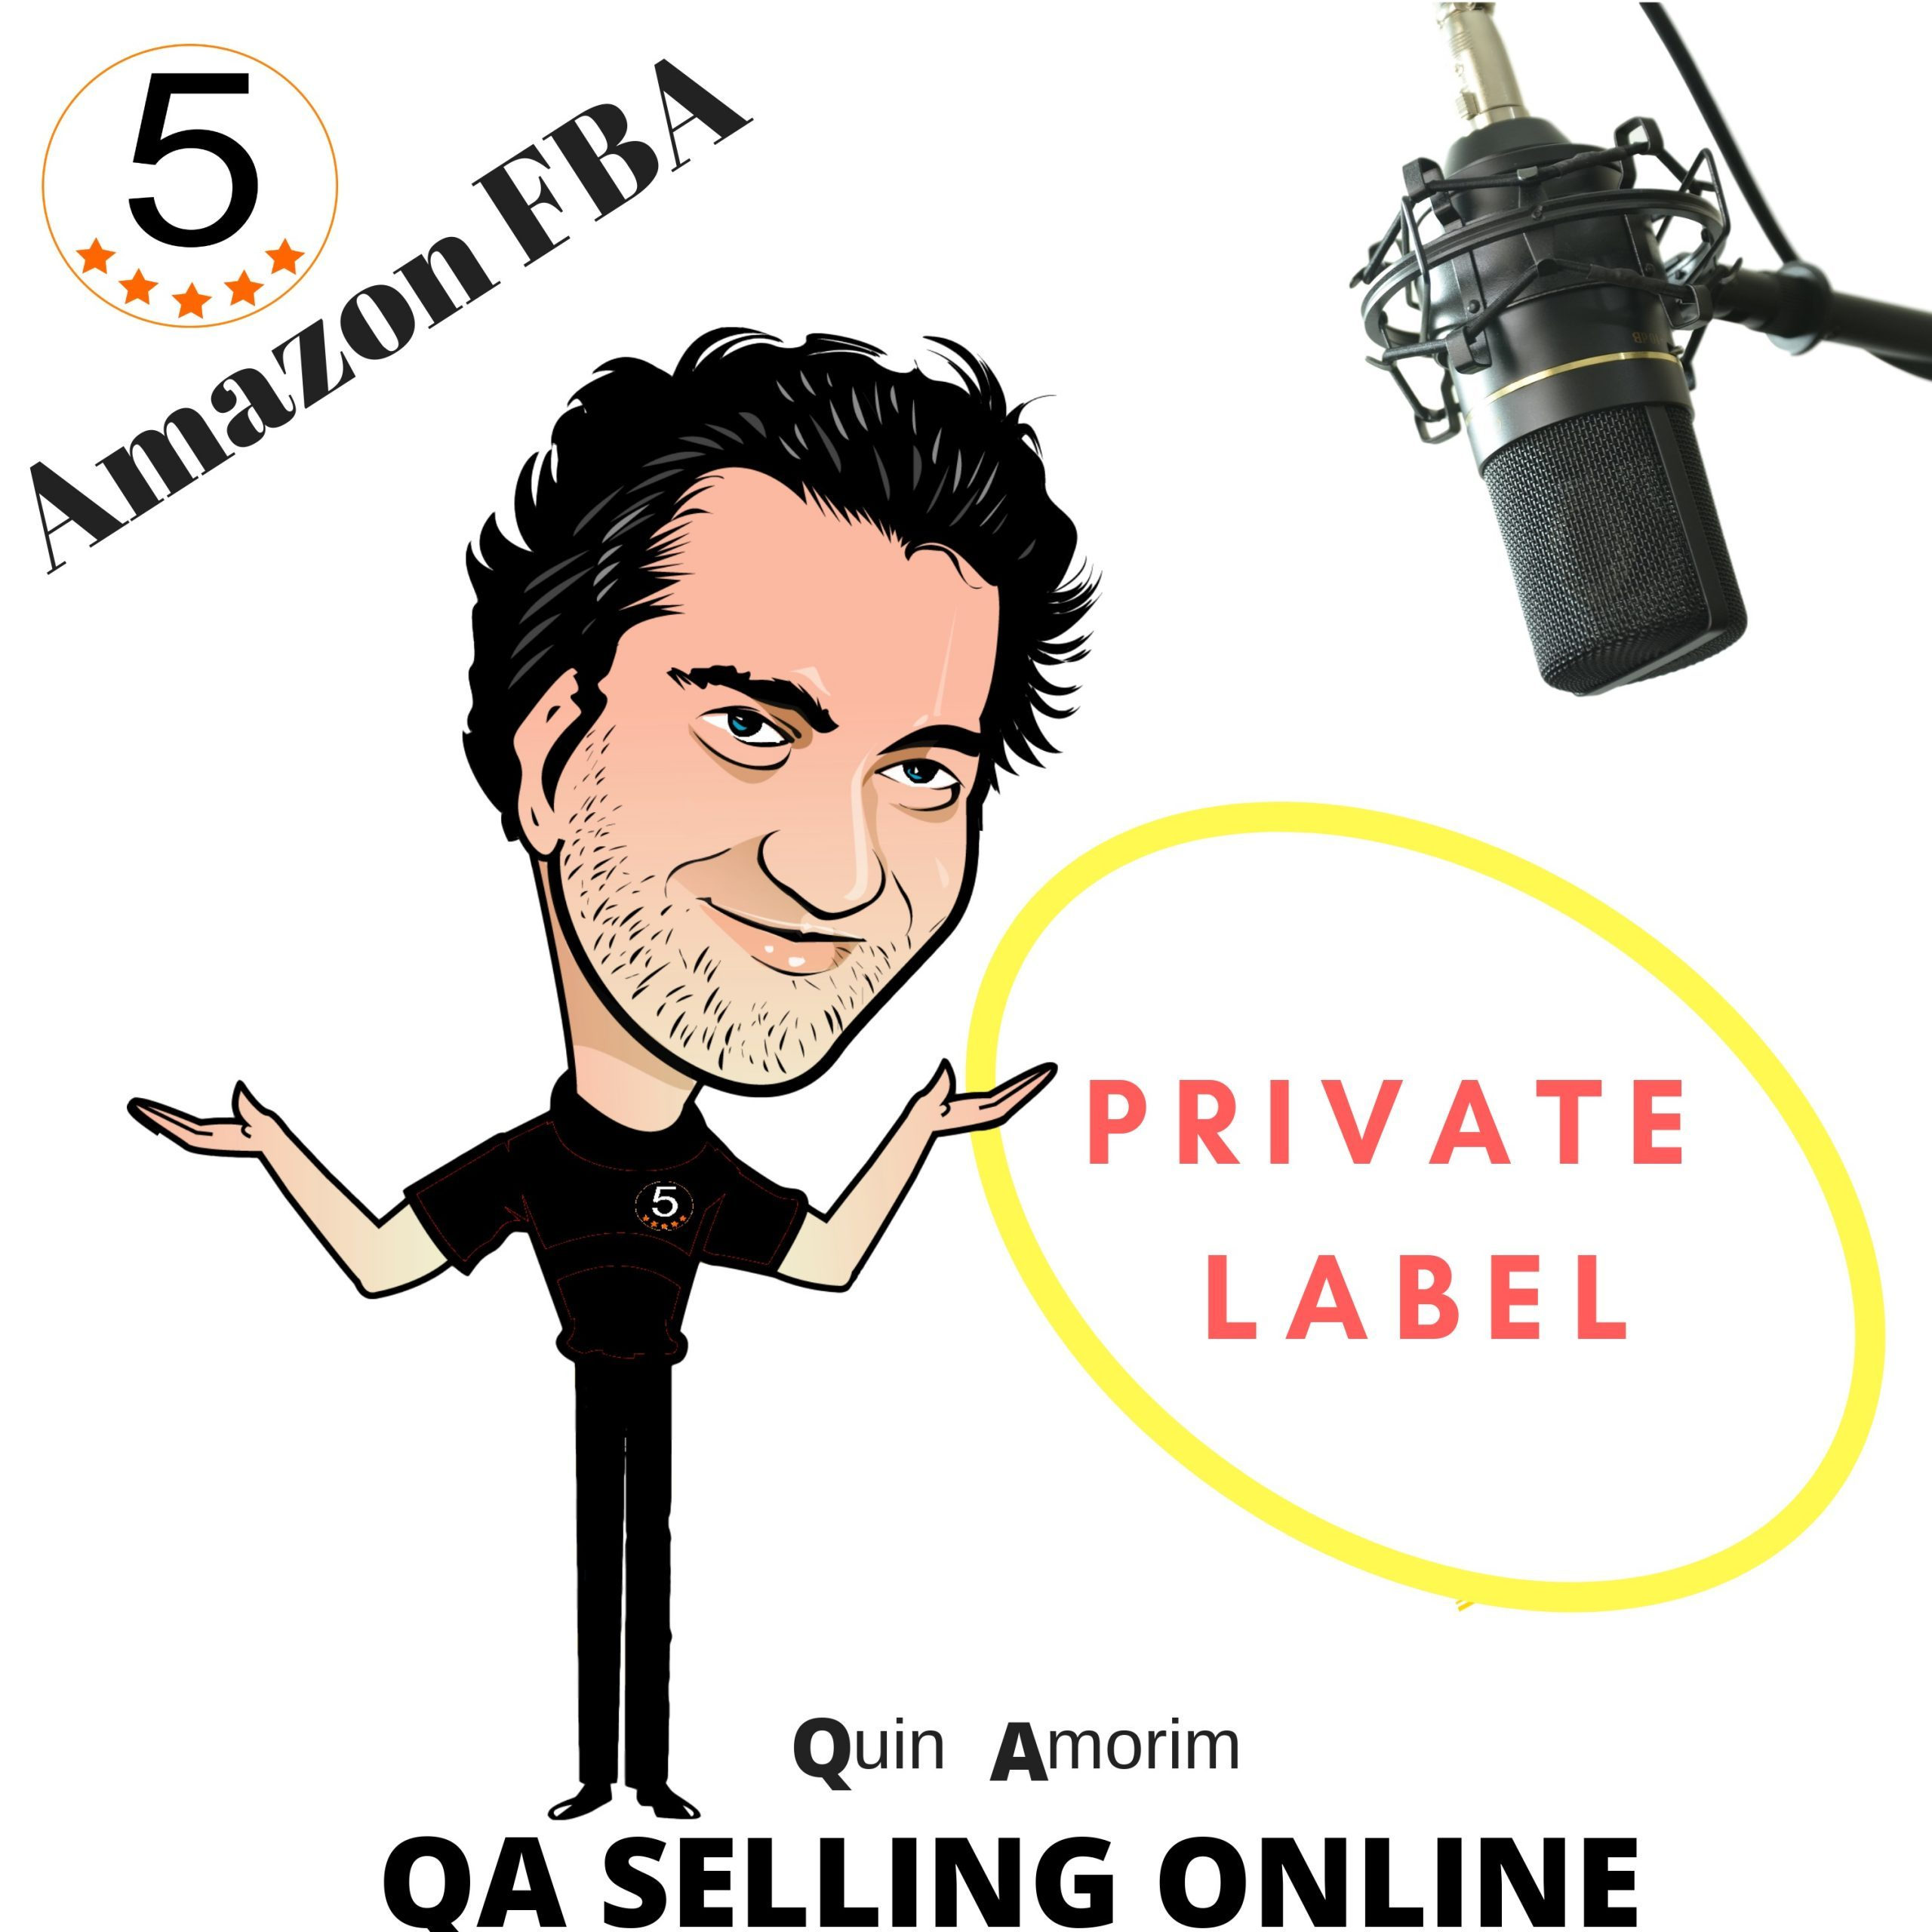 Amazon FBA Podcast